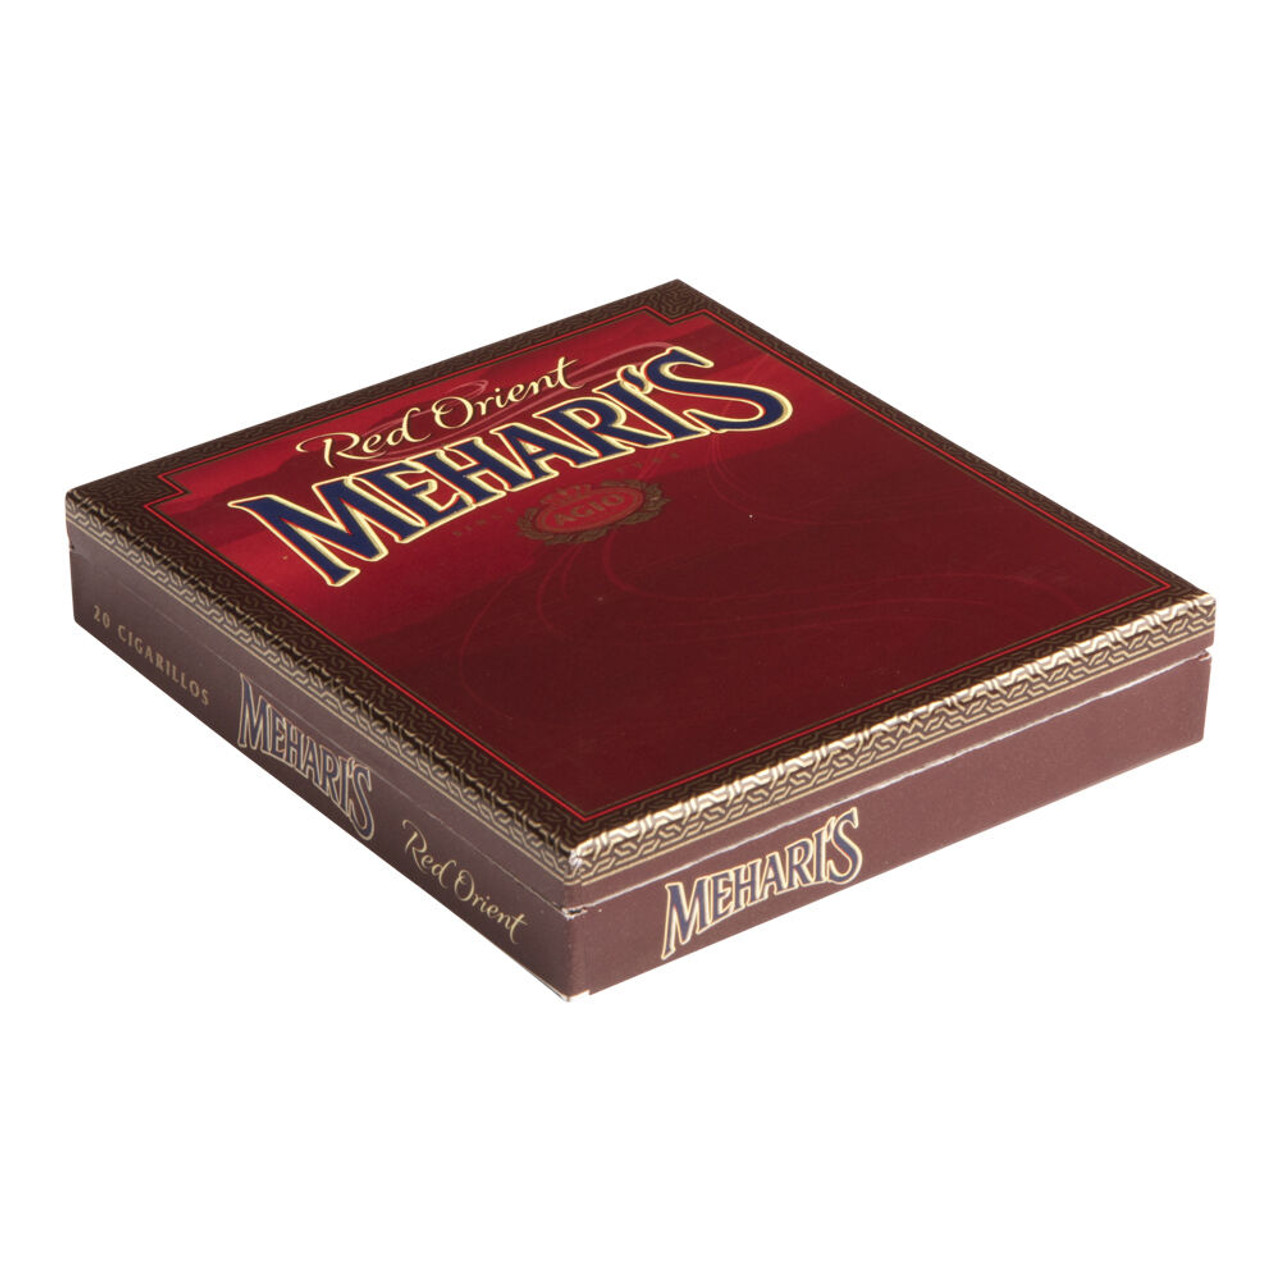 Agio Mehari's Cigarillos Red Orient Cigars - 4 x 23 (20 packs of 10 (200 total))